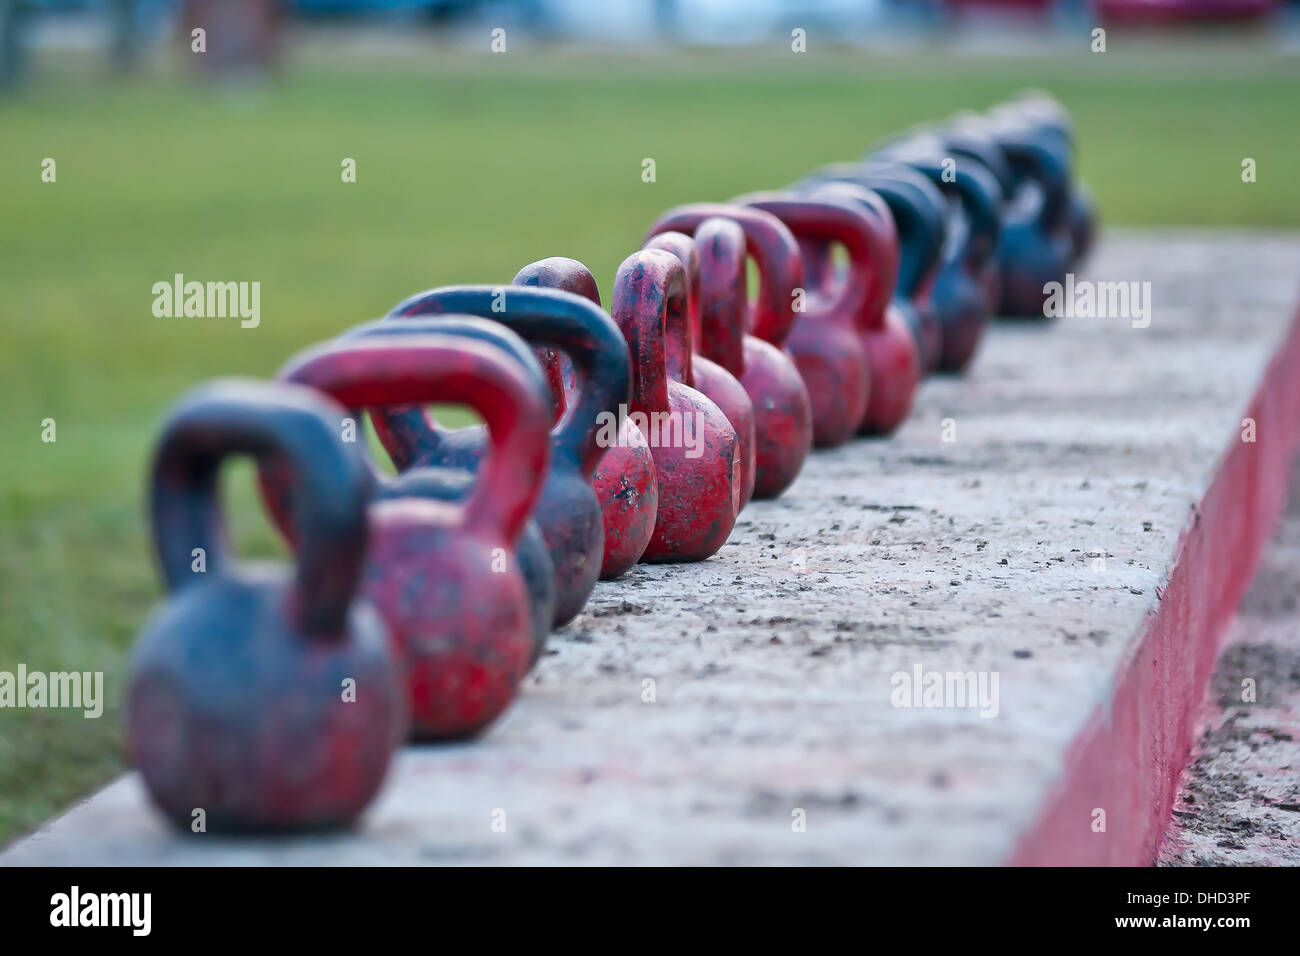 kettlebell for weight training - Stock Image